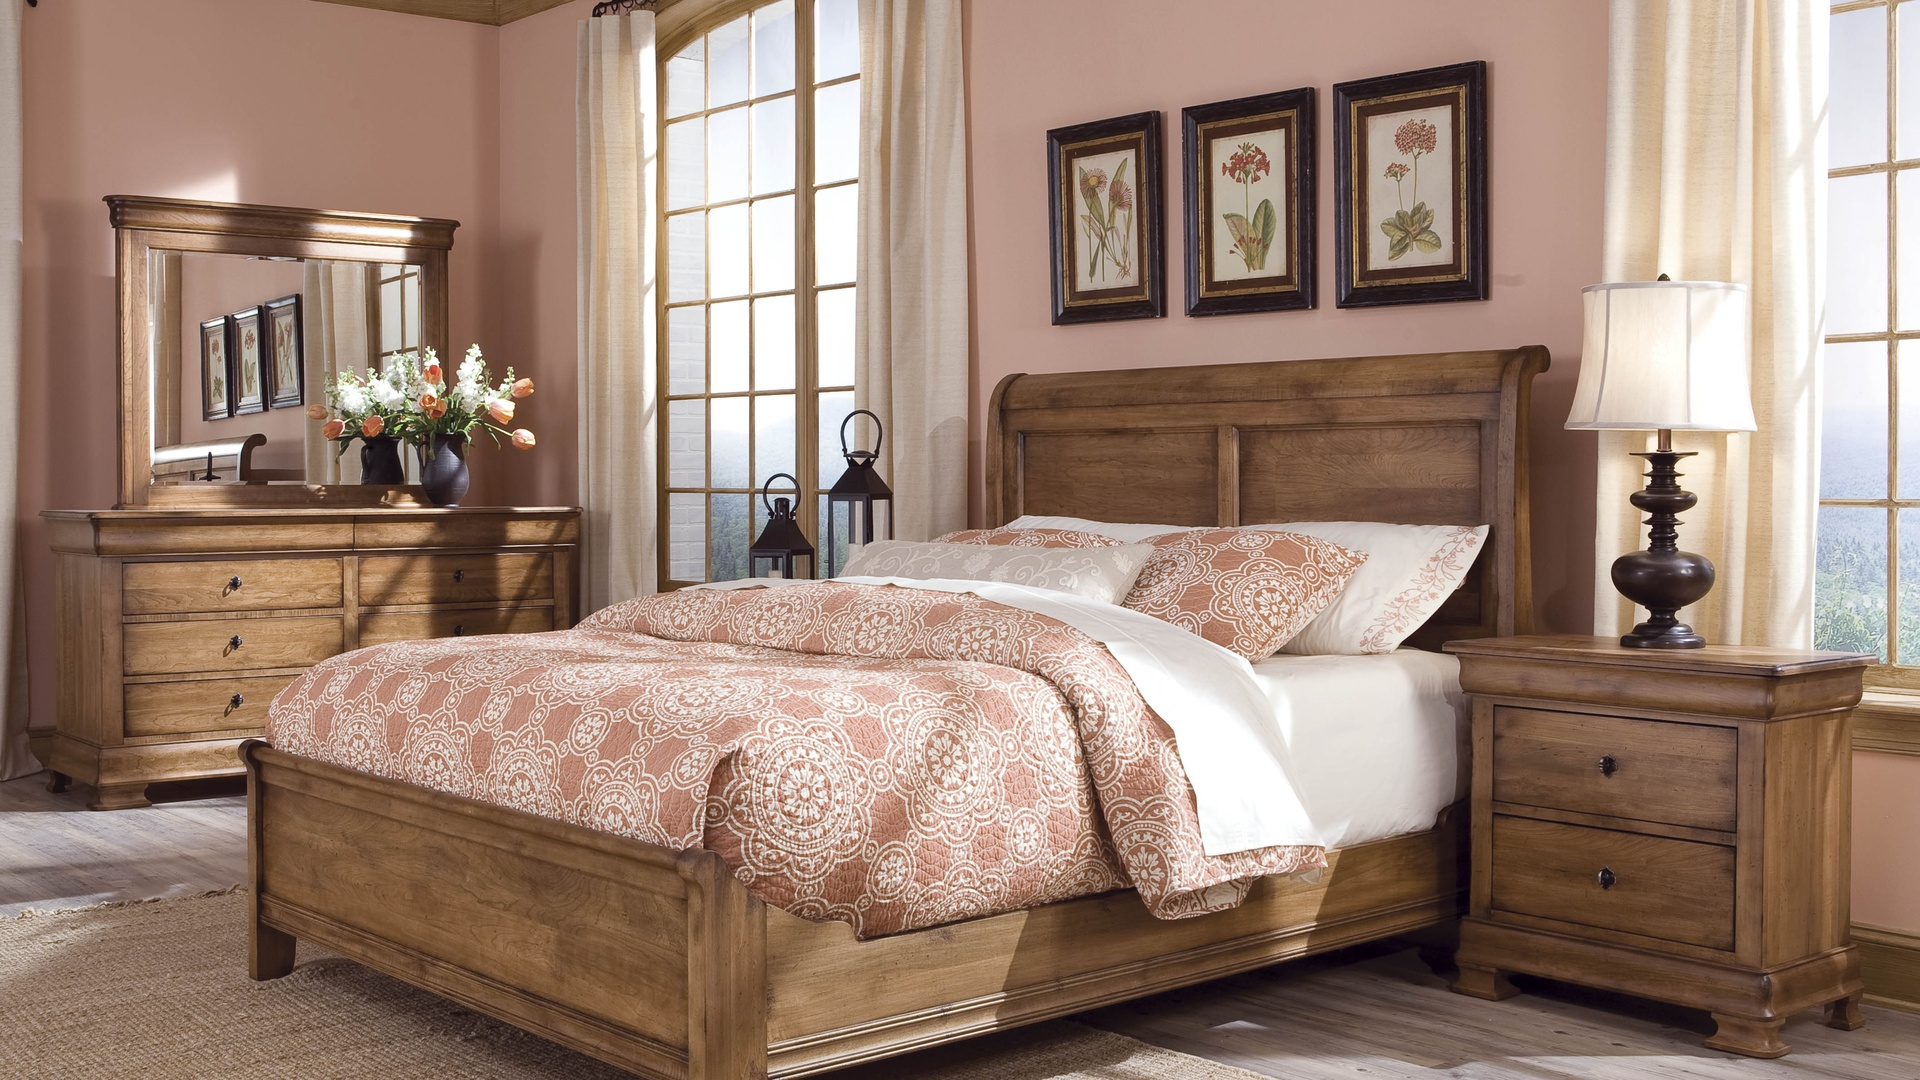 bedroom lc spa furniture id comviewdoc collections aspco lcmobili night modern